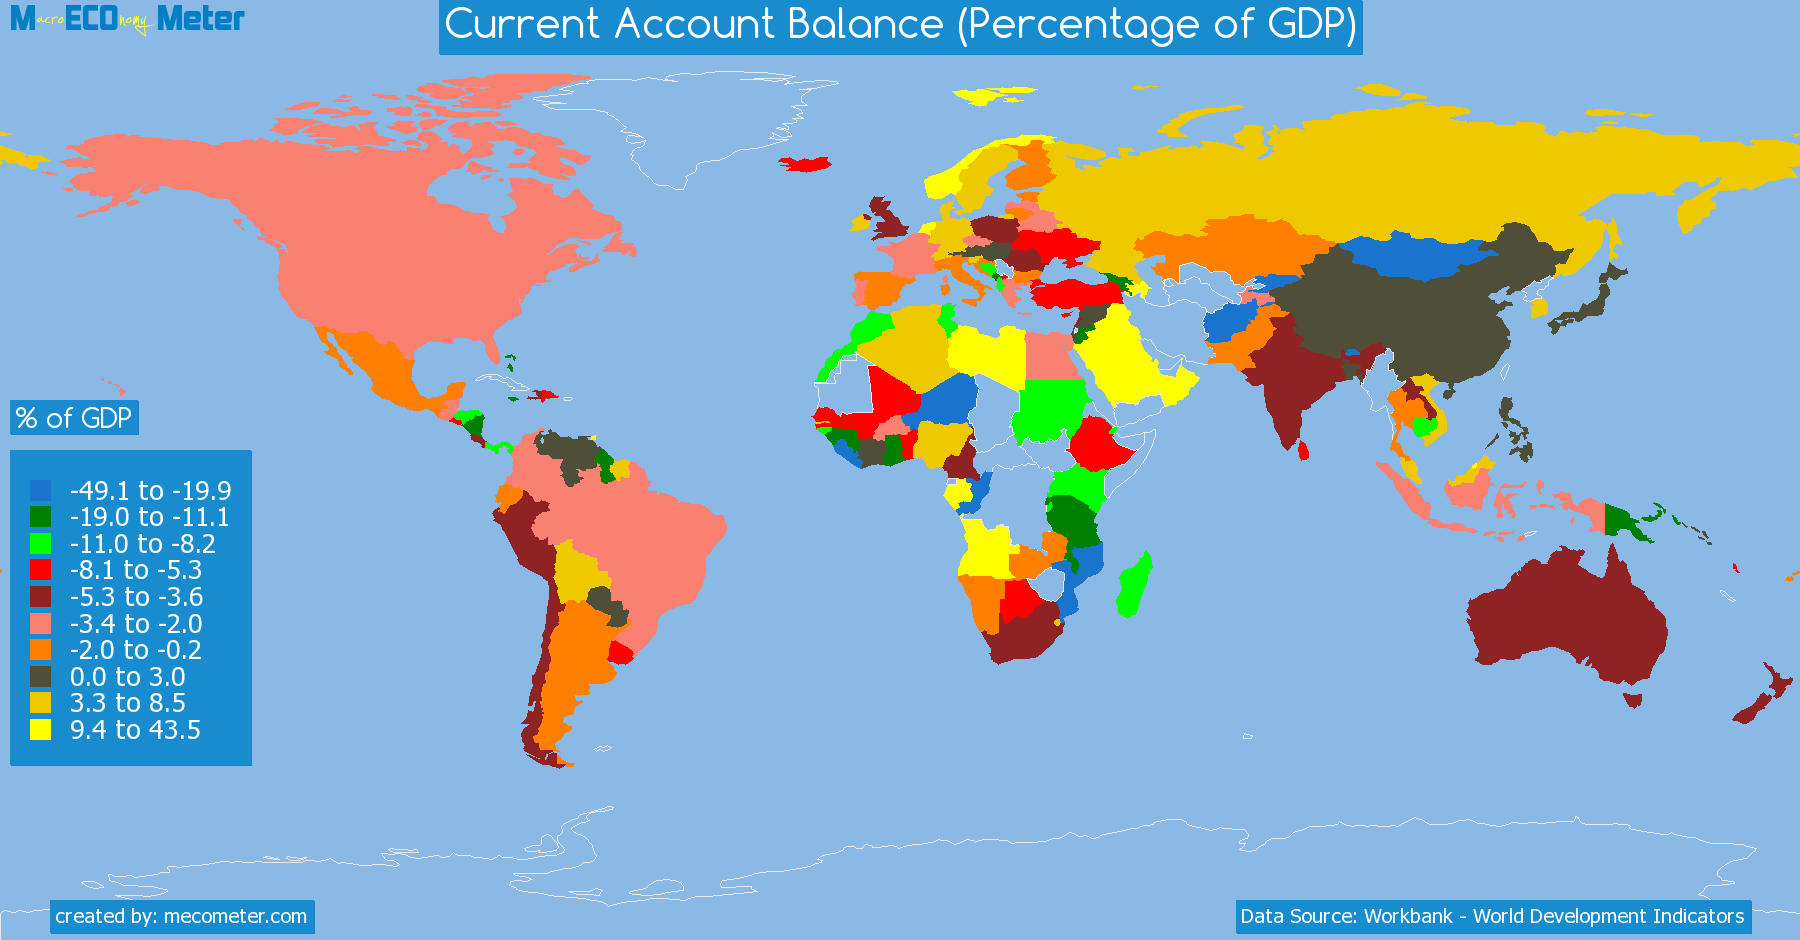 list of countries by Current Account Balance (Percentage of GDP)